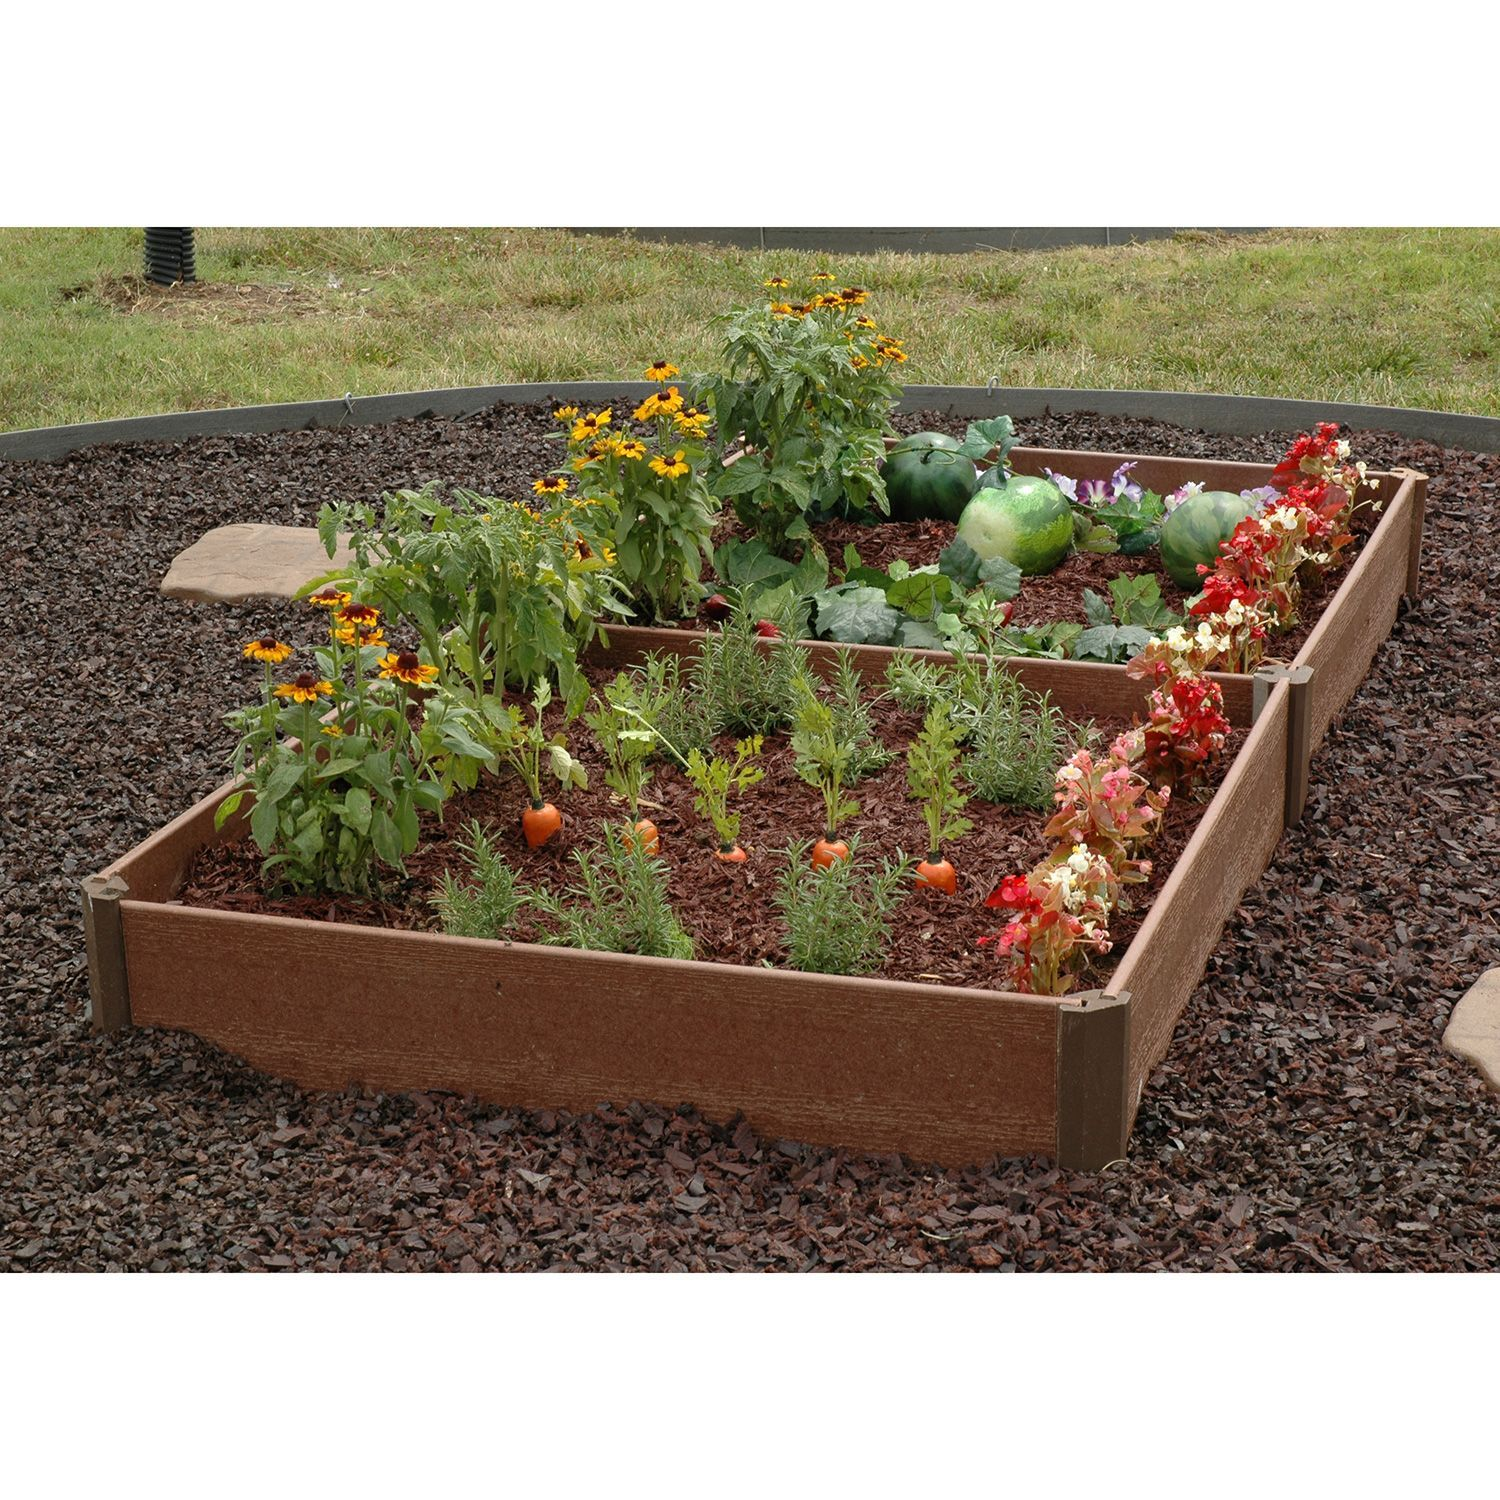 This Is Okay For Growing Fruits And Veggies ... I Prefer